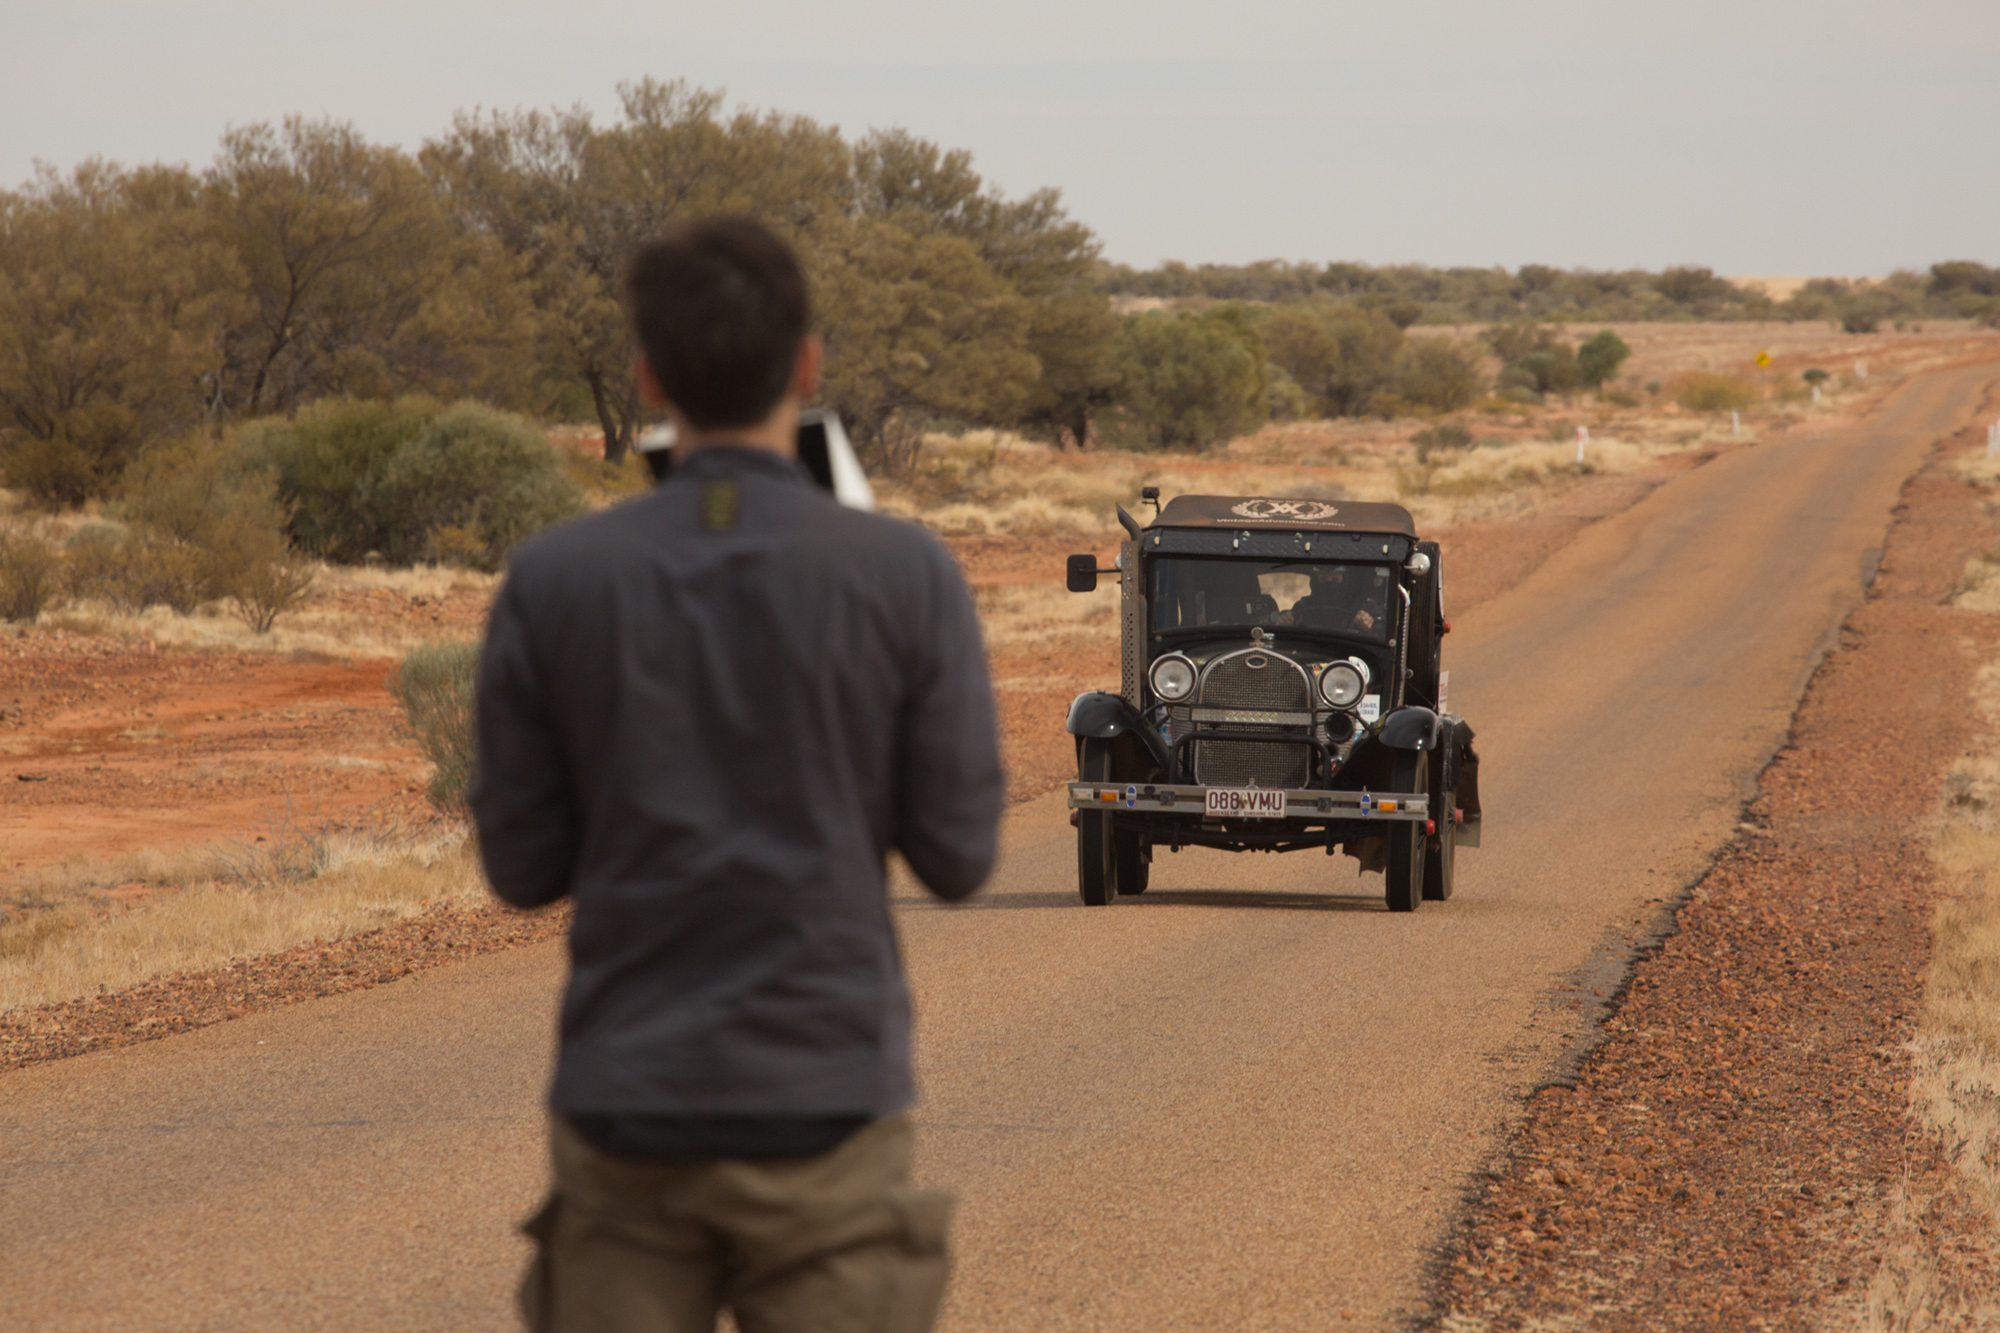 Ben Sherlock filming vehicle on road in Australia